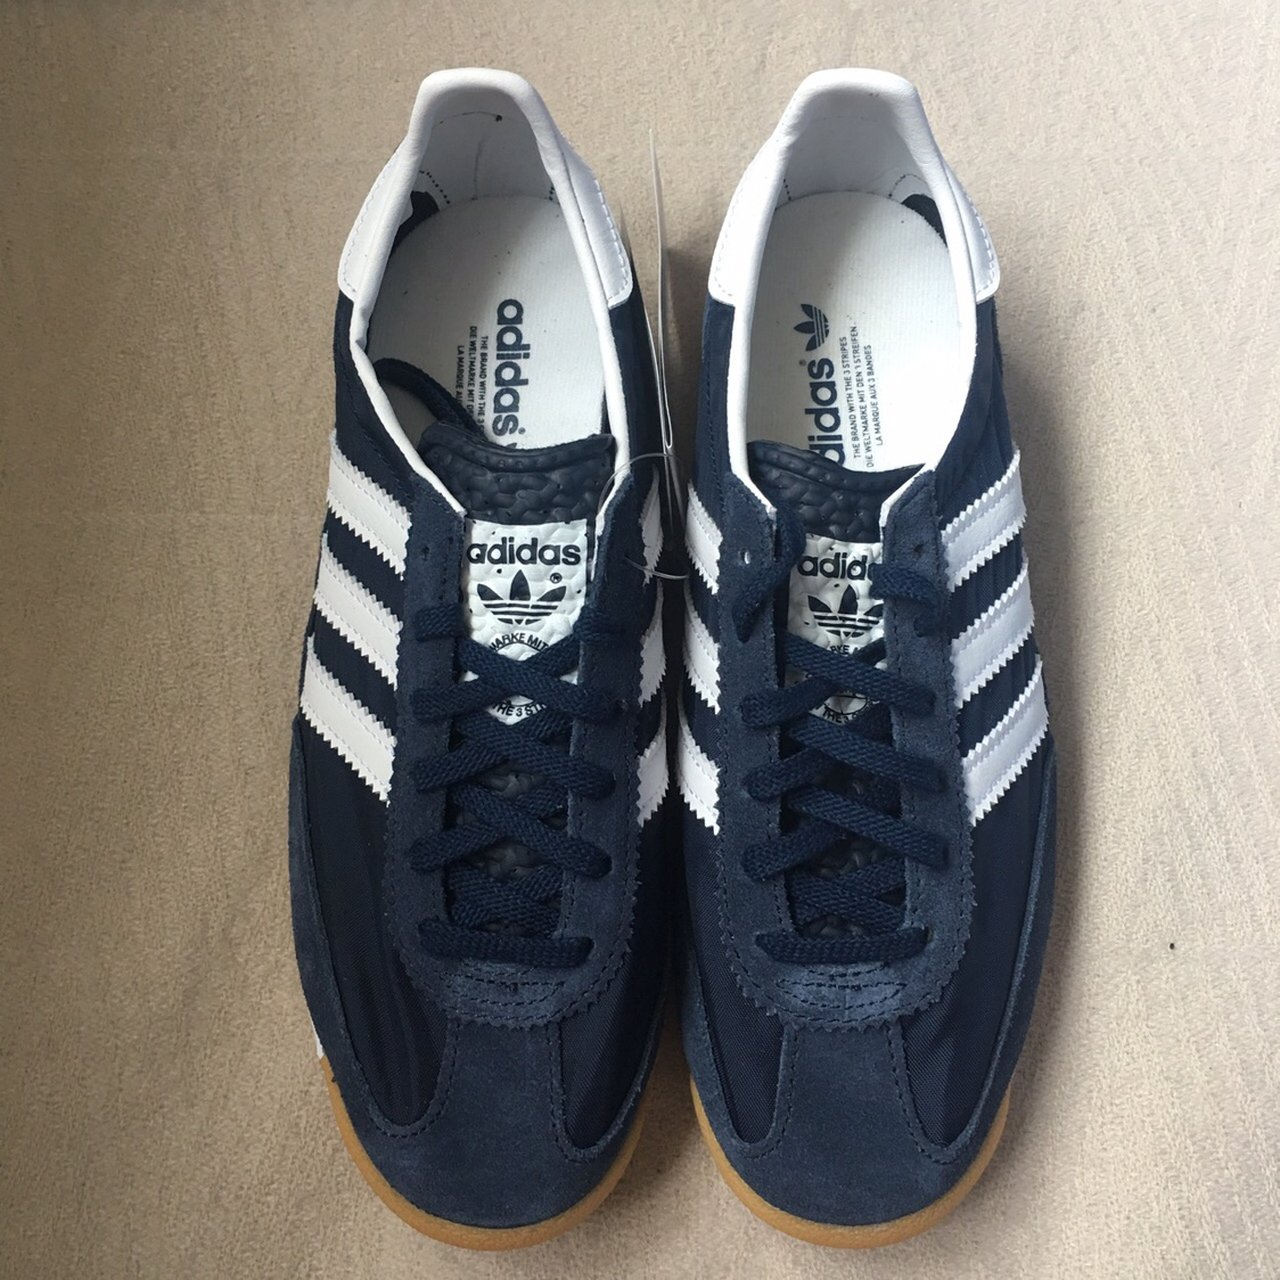 Adidas SL72 NIGHT NAVY, white and solid